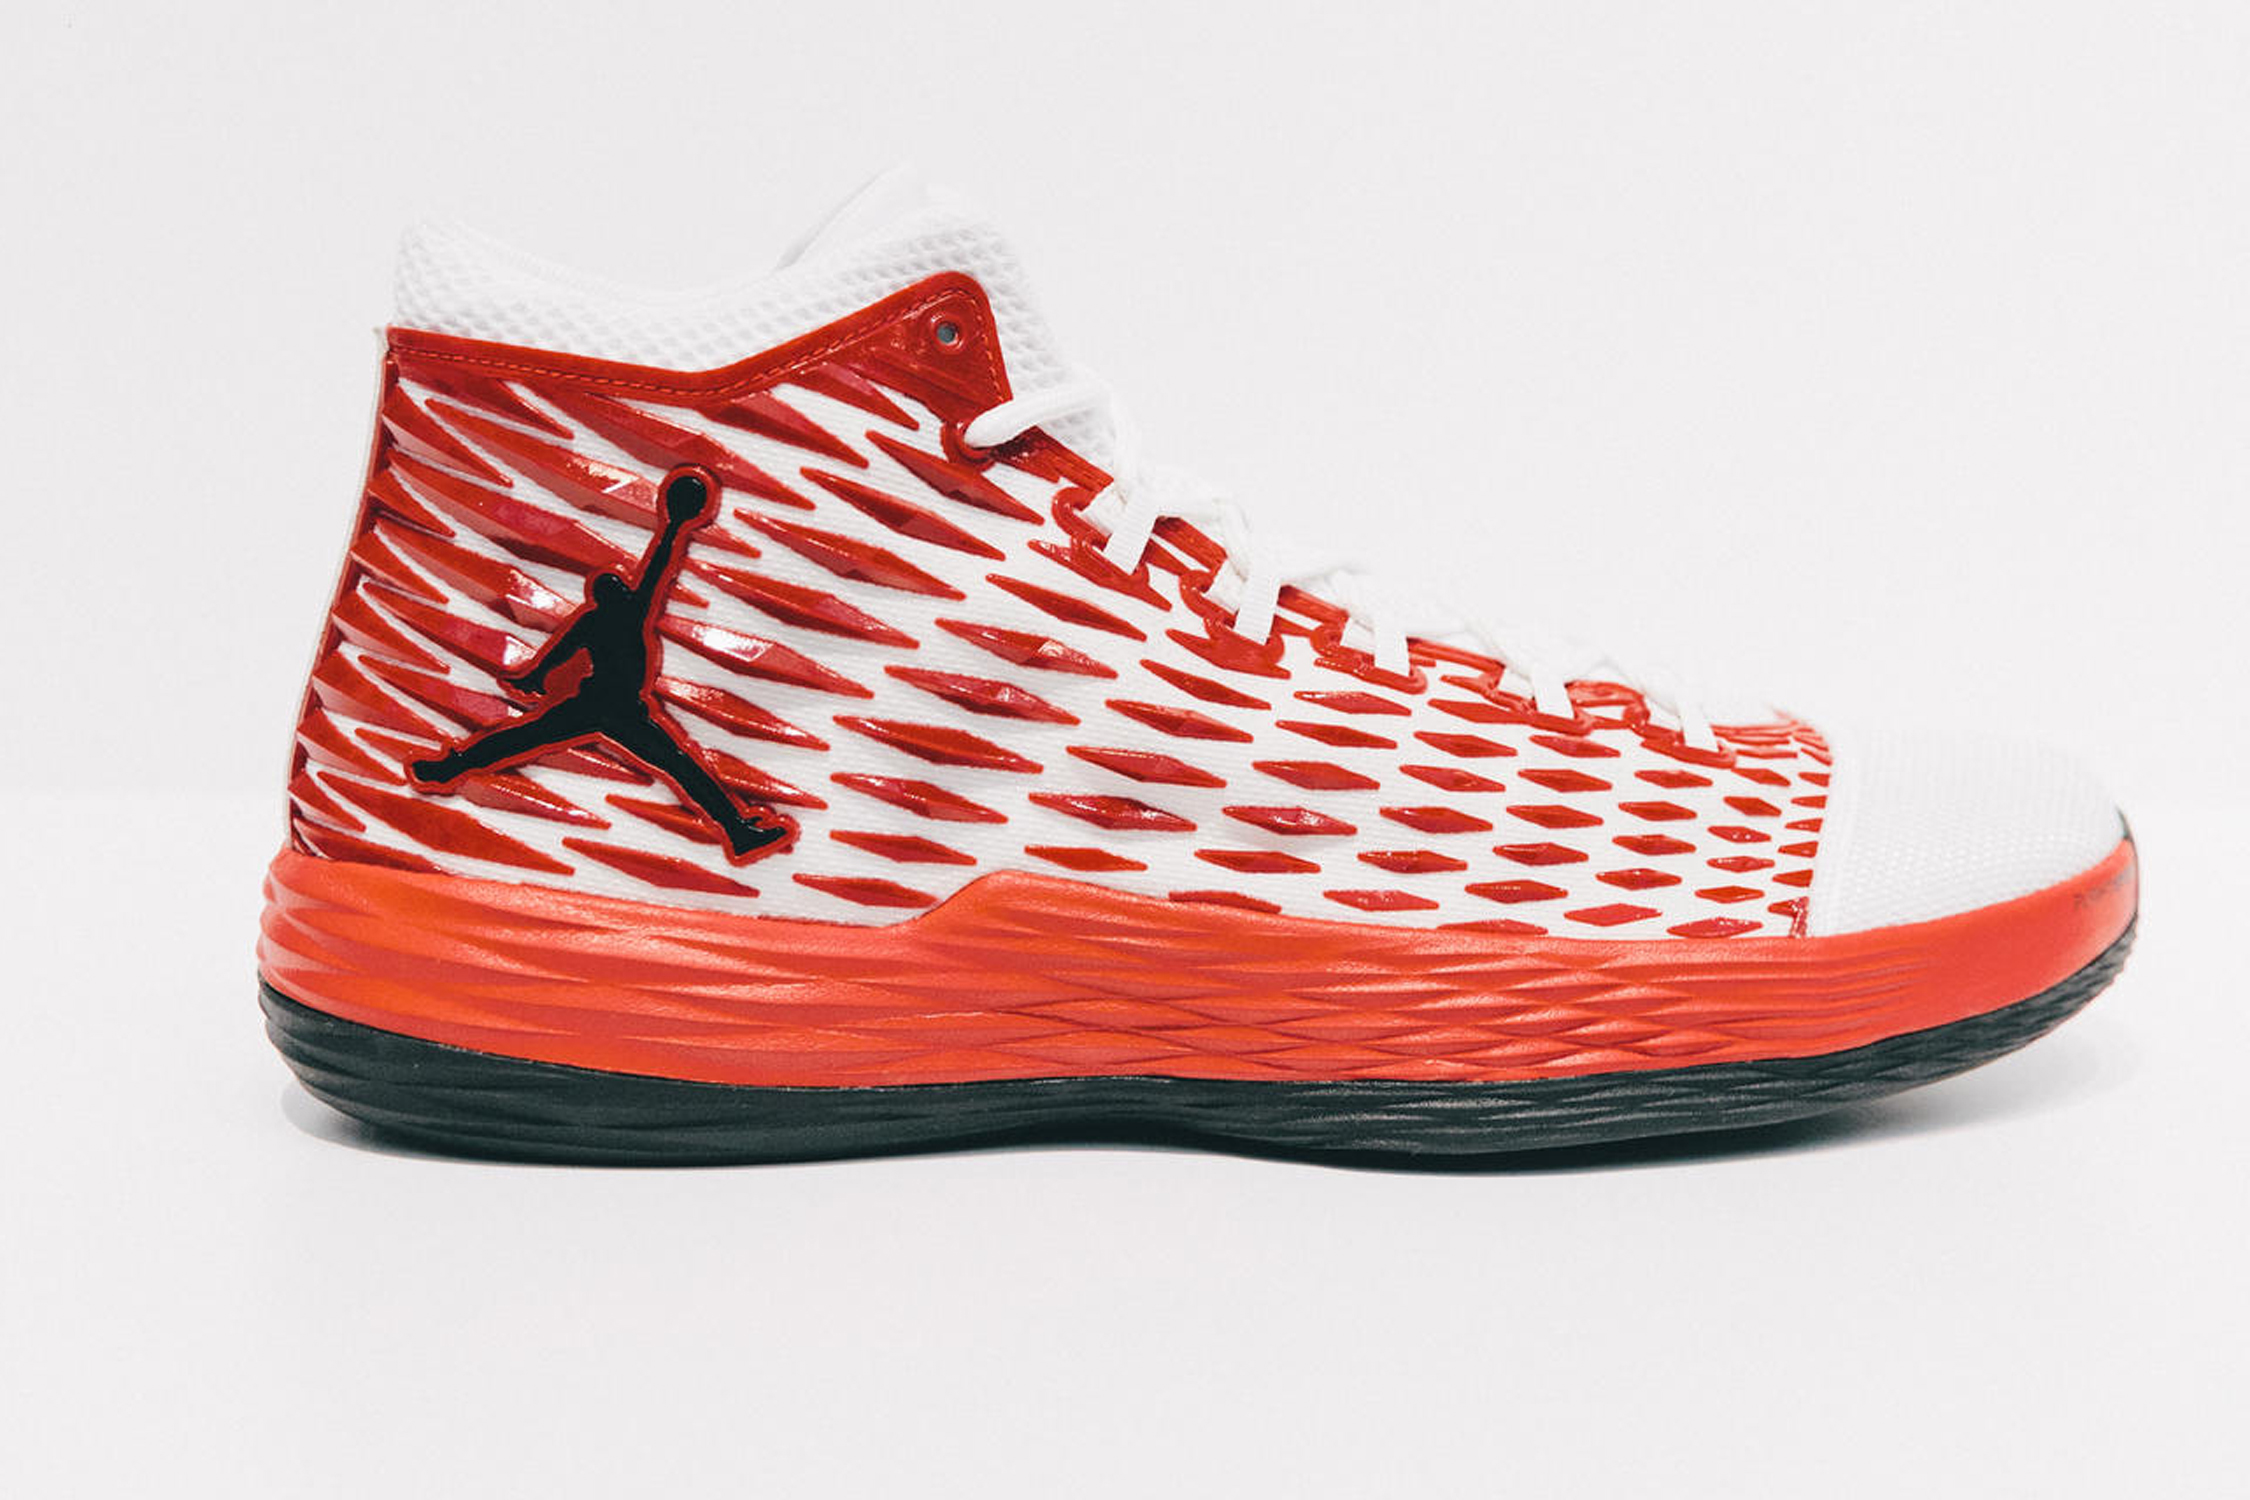 Carmelo Anthony will debut his latest signature sneaker, the M13 on-court as part of the Christmas Day PE collection.